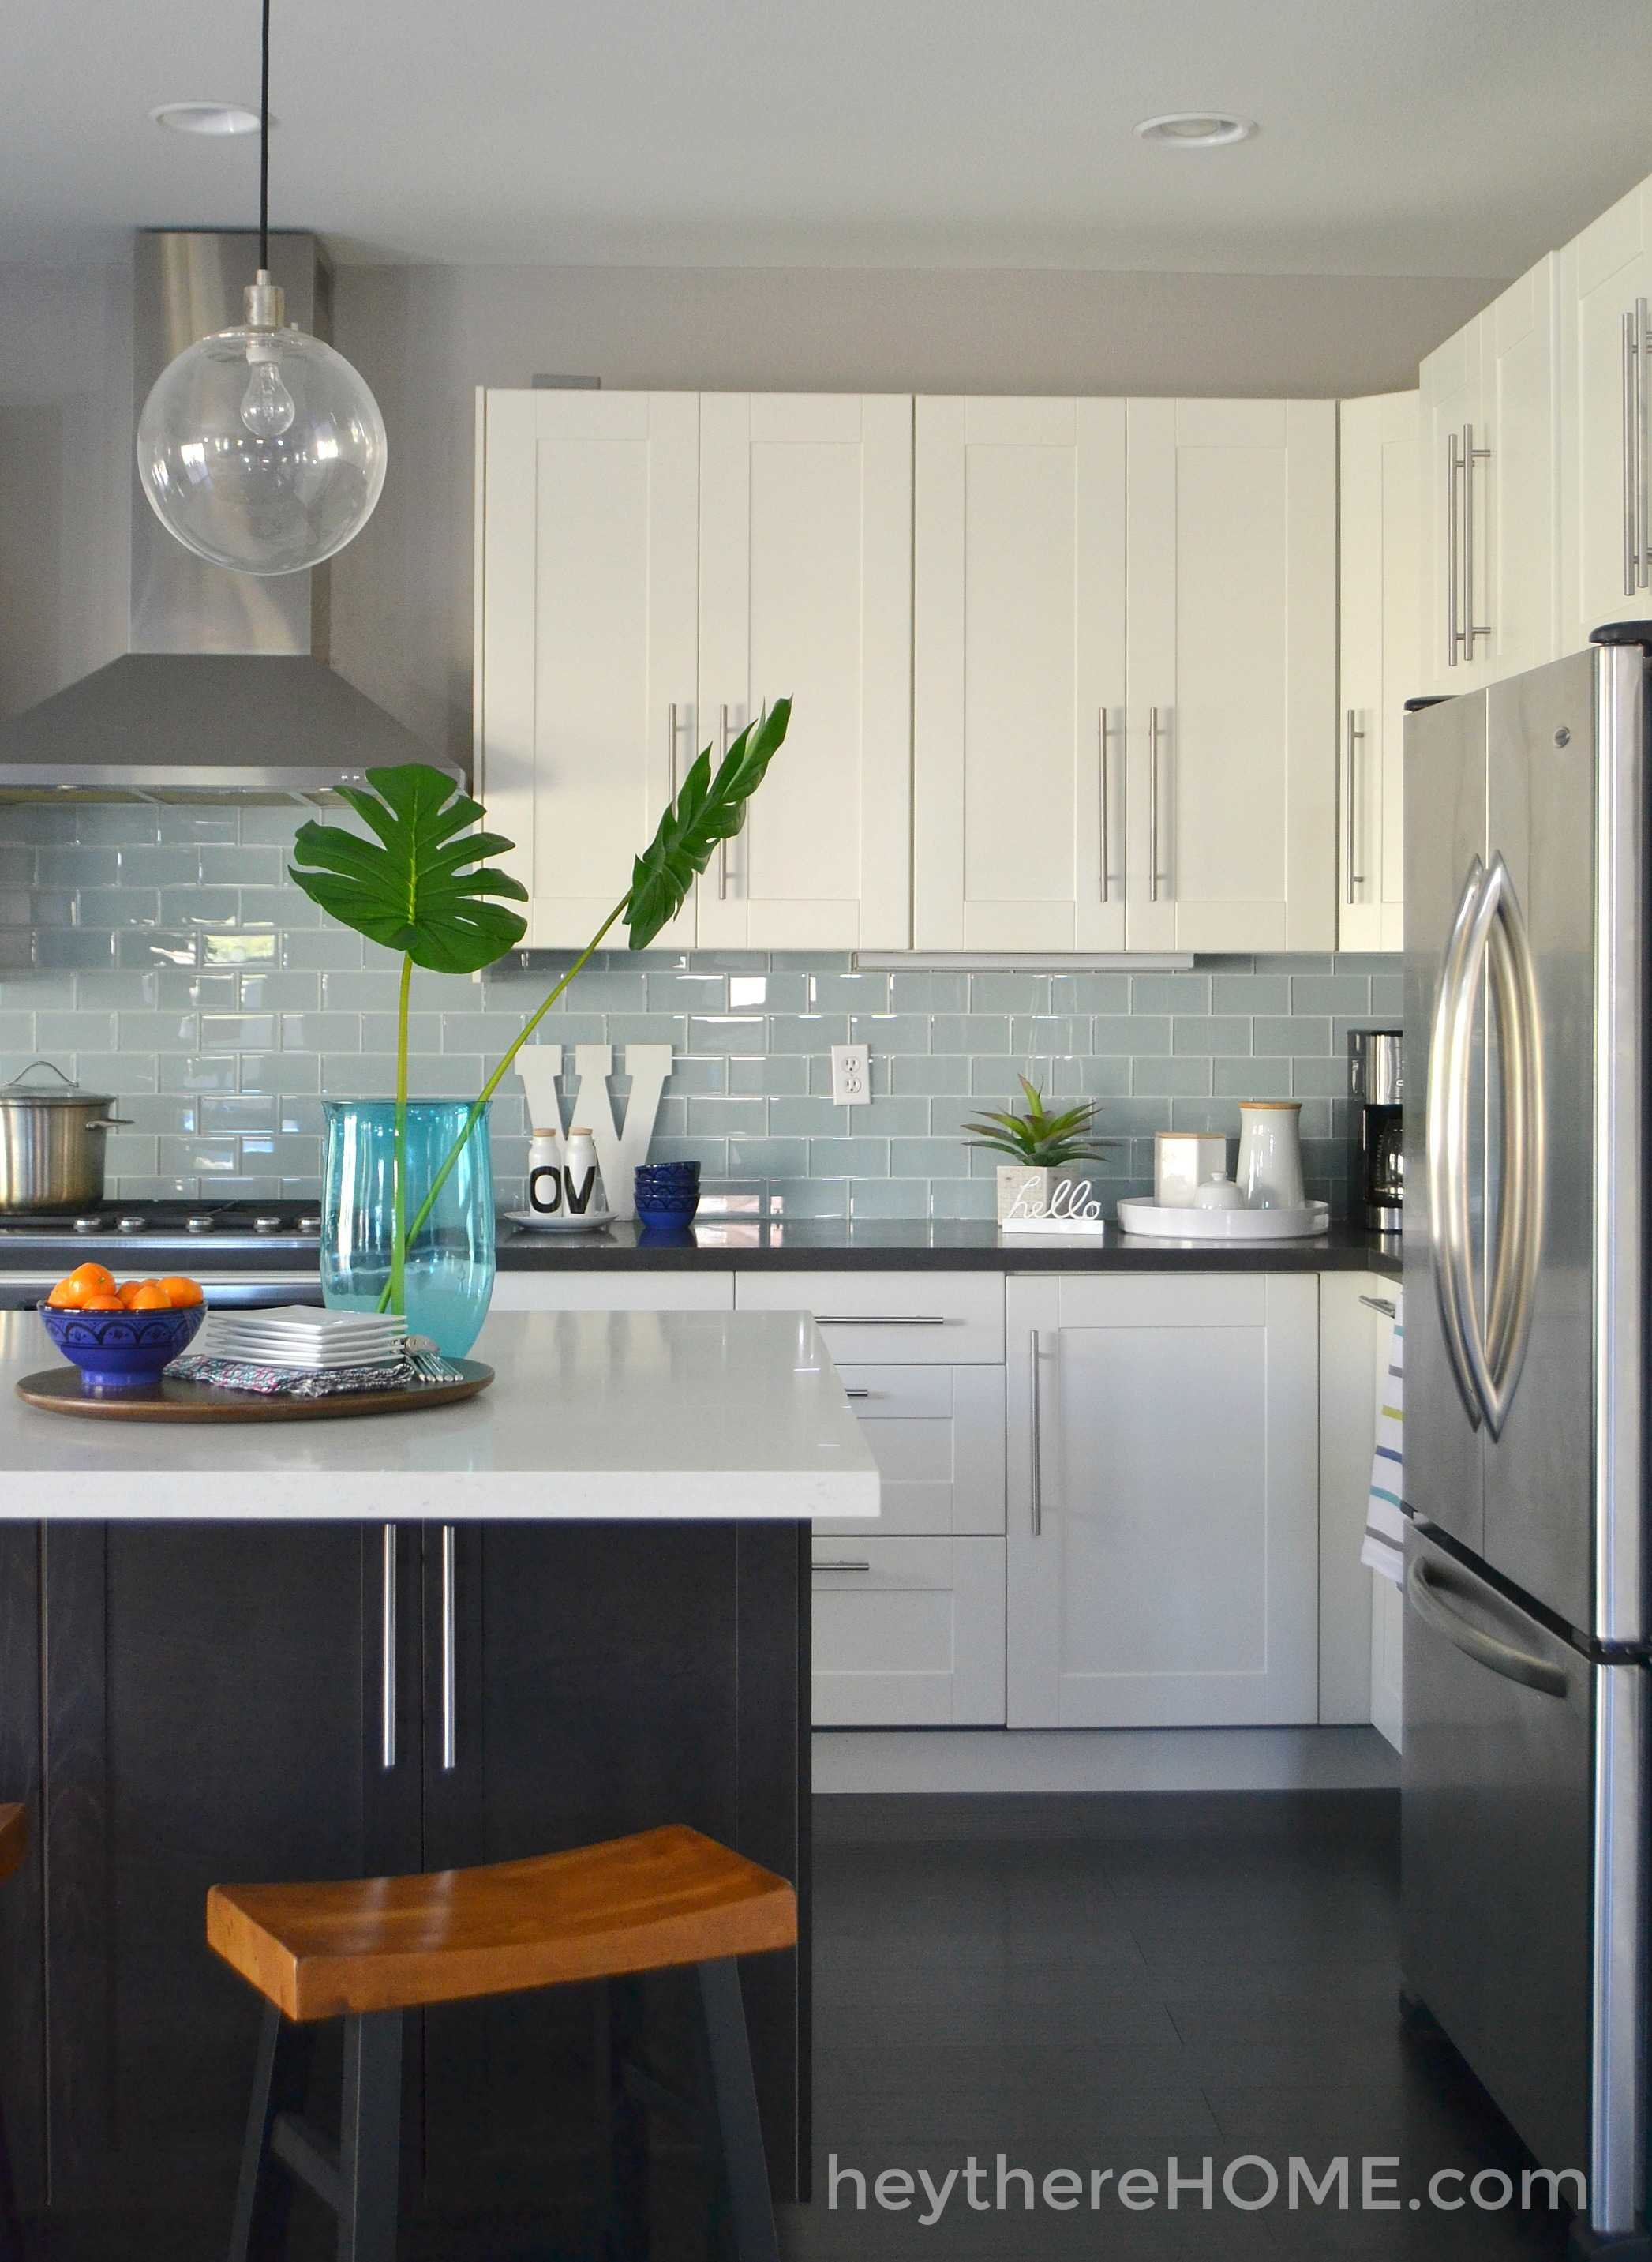 Kitchen remodel ideas that add value to your home for Kitchen cabinets ikea